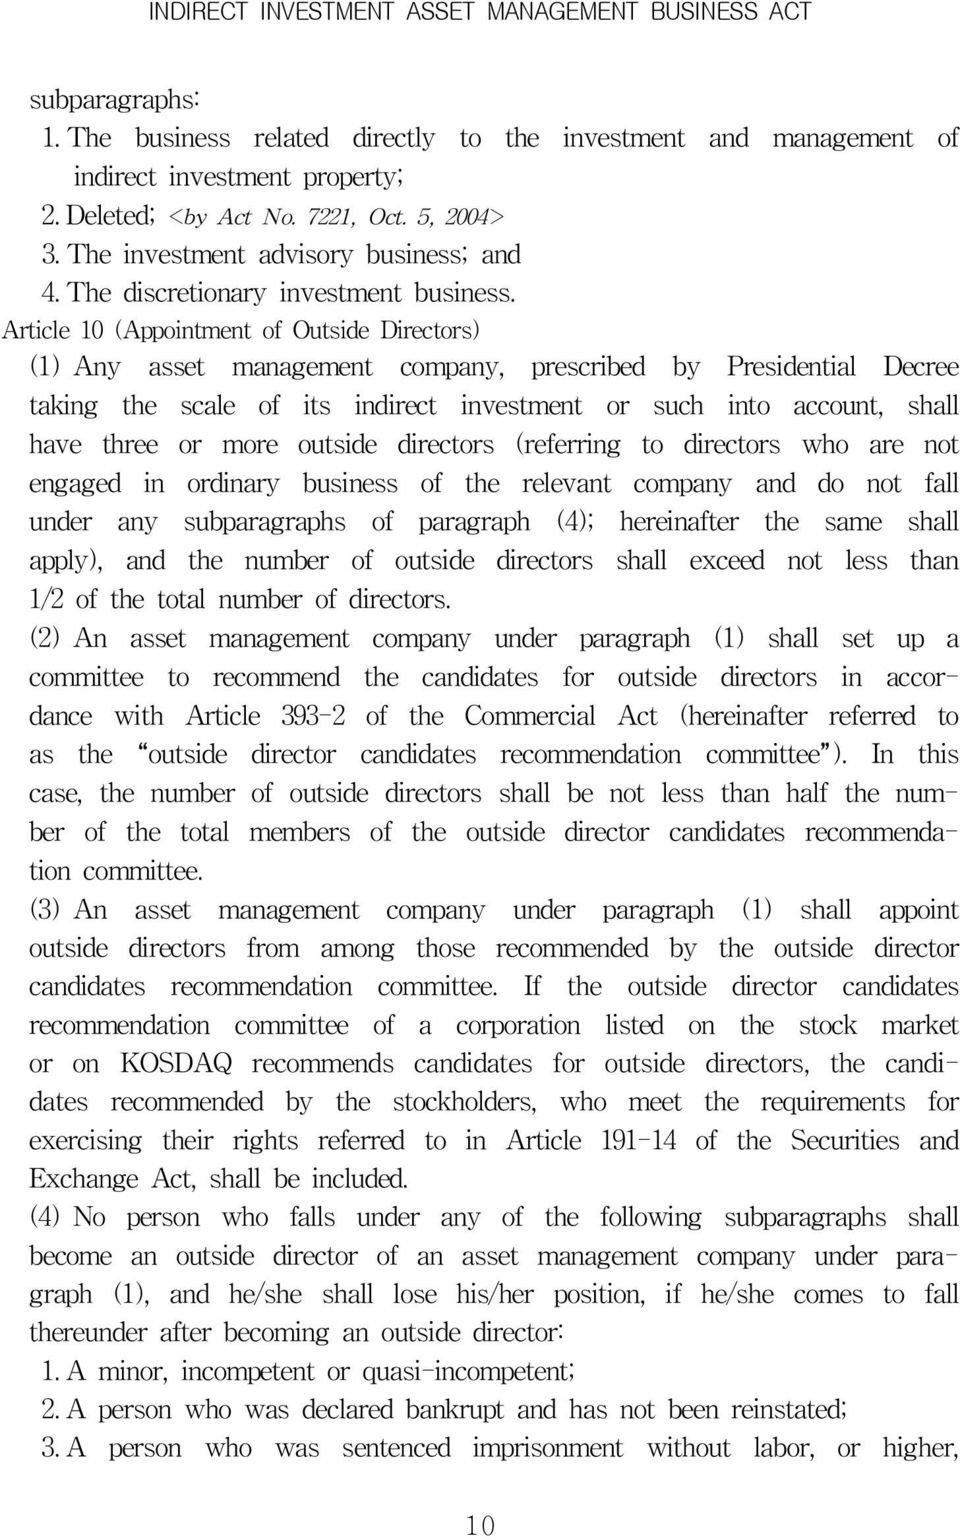 Article 10 (Appointment of Outside Directors) (1) Any asset management company, prescribed by Presidential Decree taking the scale of its indirect investment or such into account, shall have three or